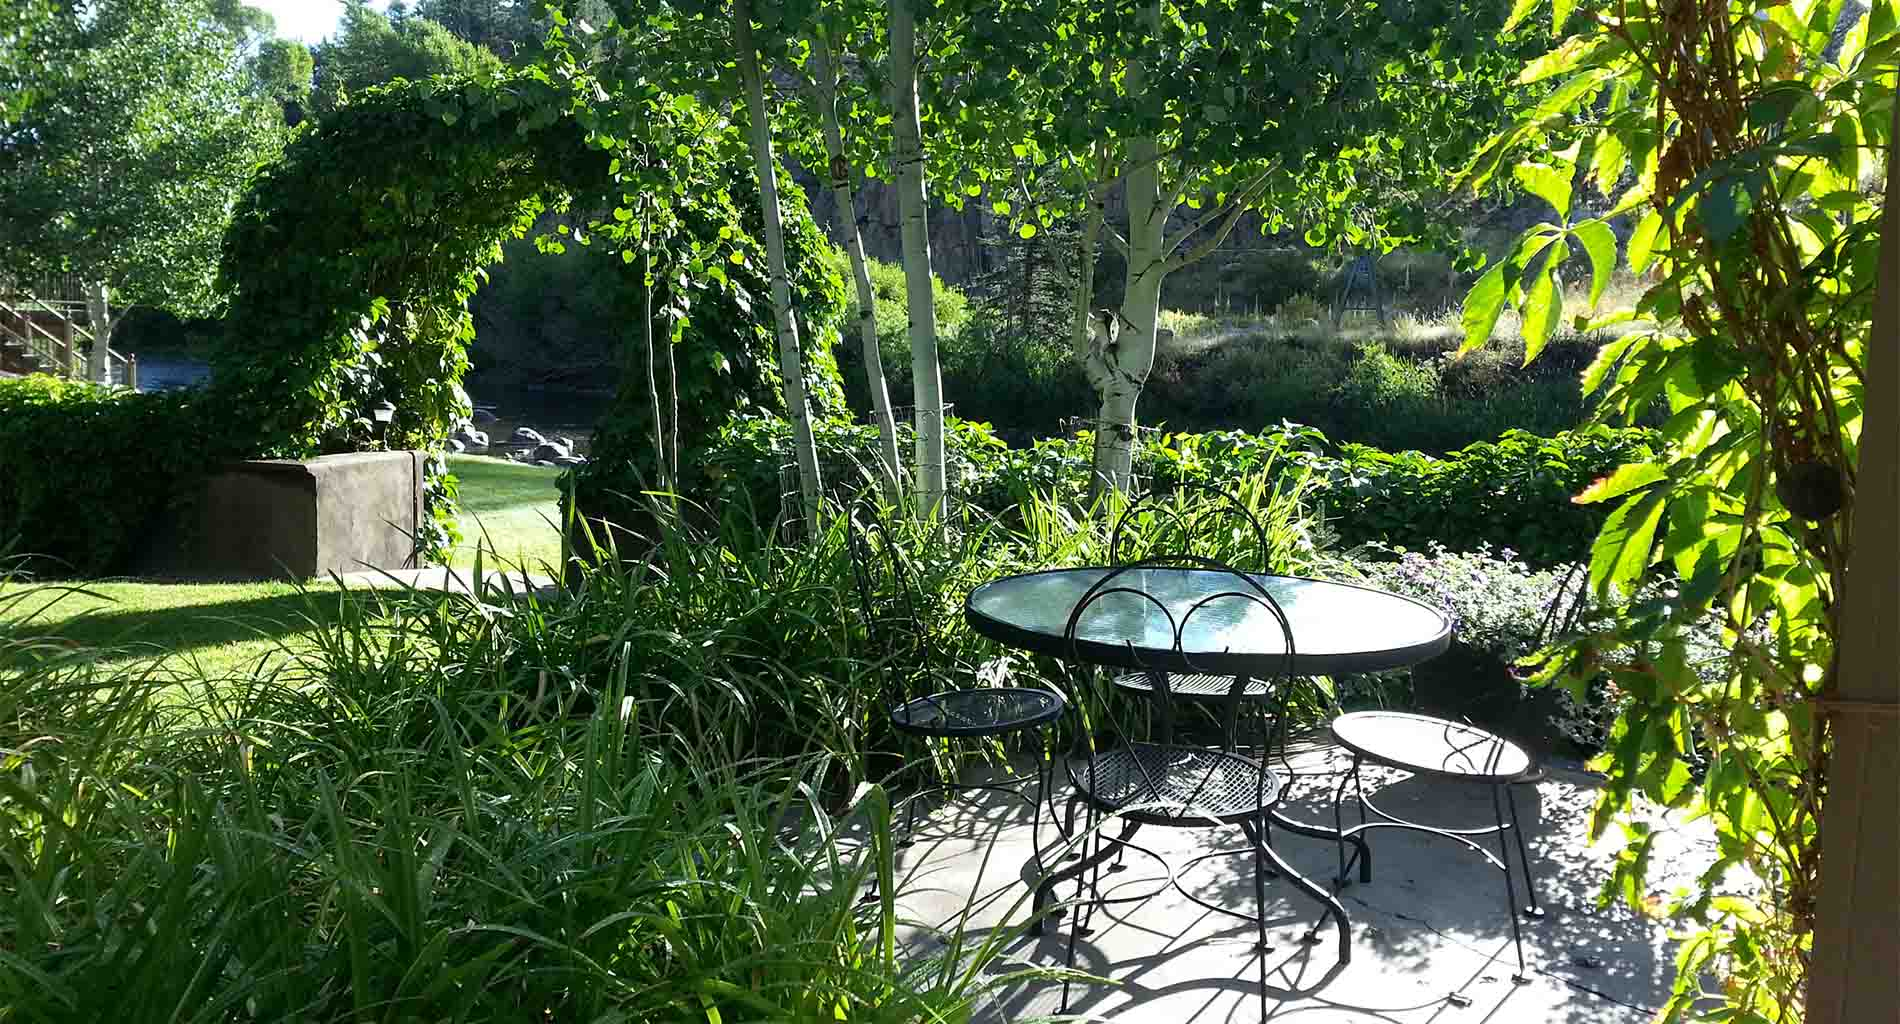 Early morning on the patio with flowers, green trees and vines